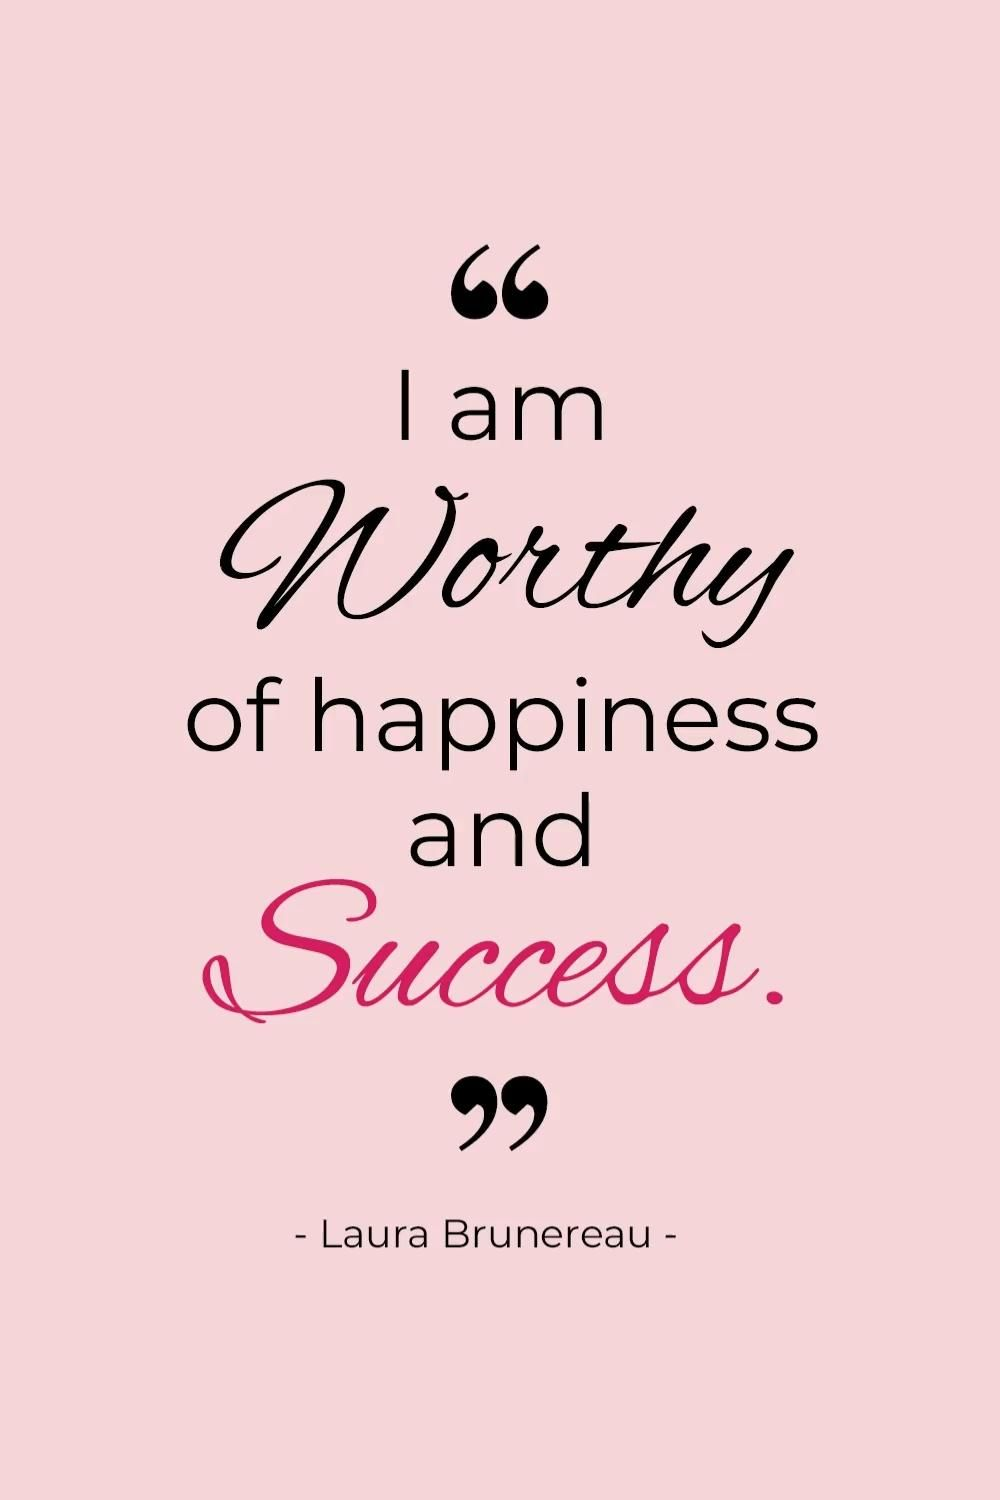 Positive Affirmations For Woman Empowerment And Positive Mindset | Luxe Fashion Blog